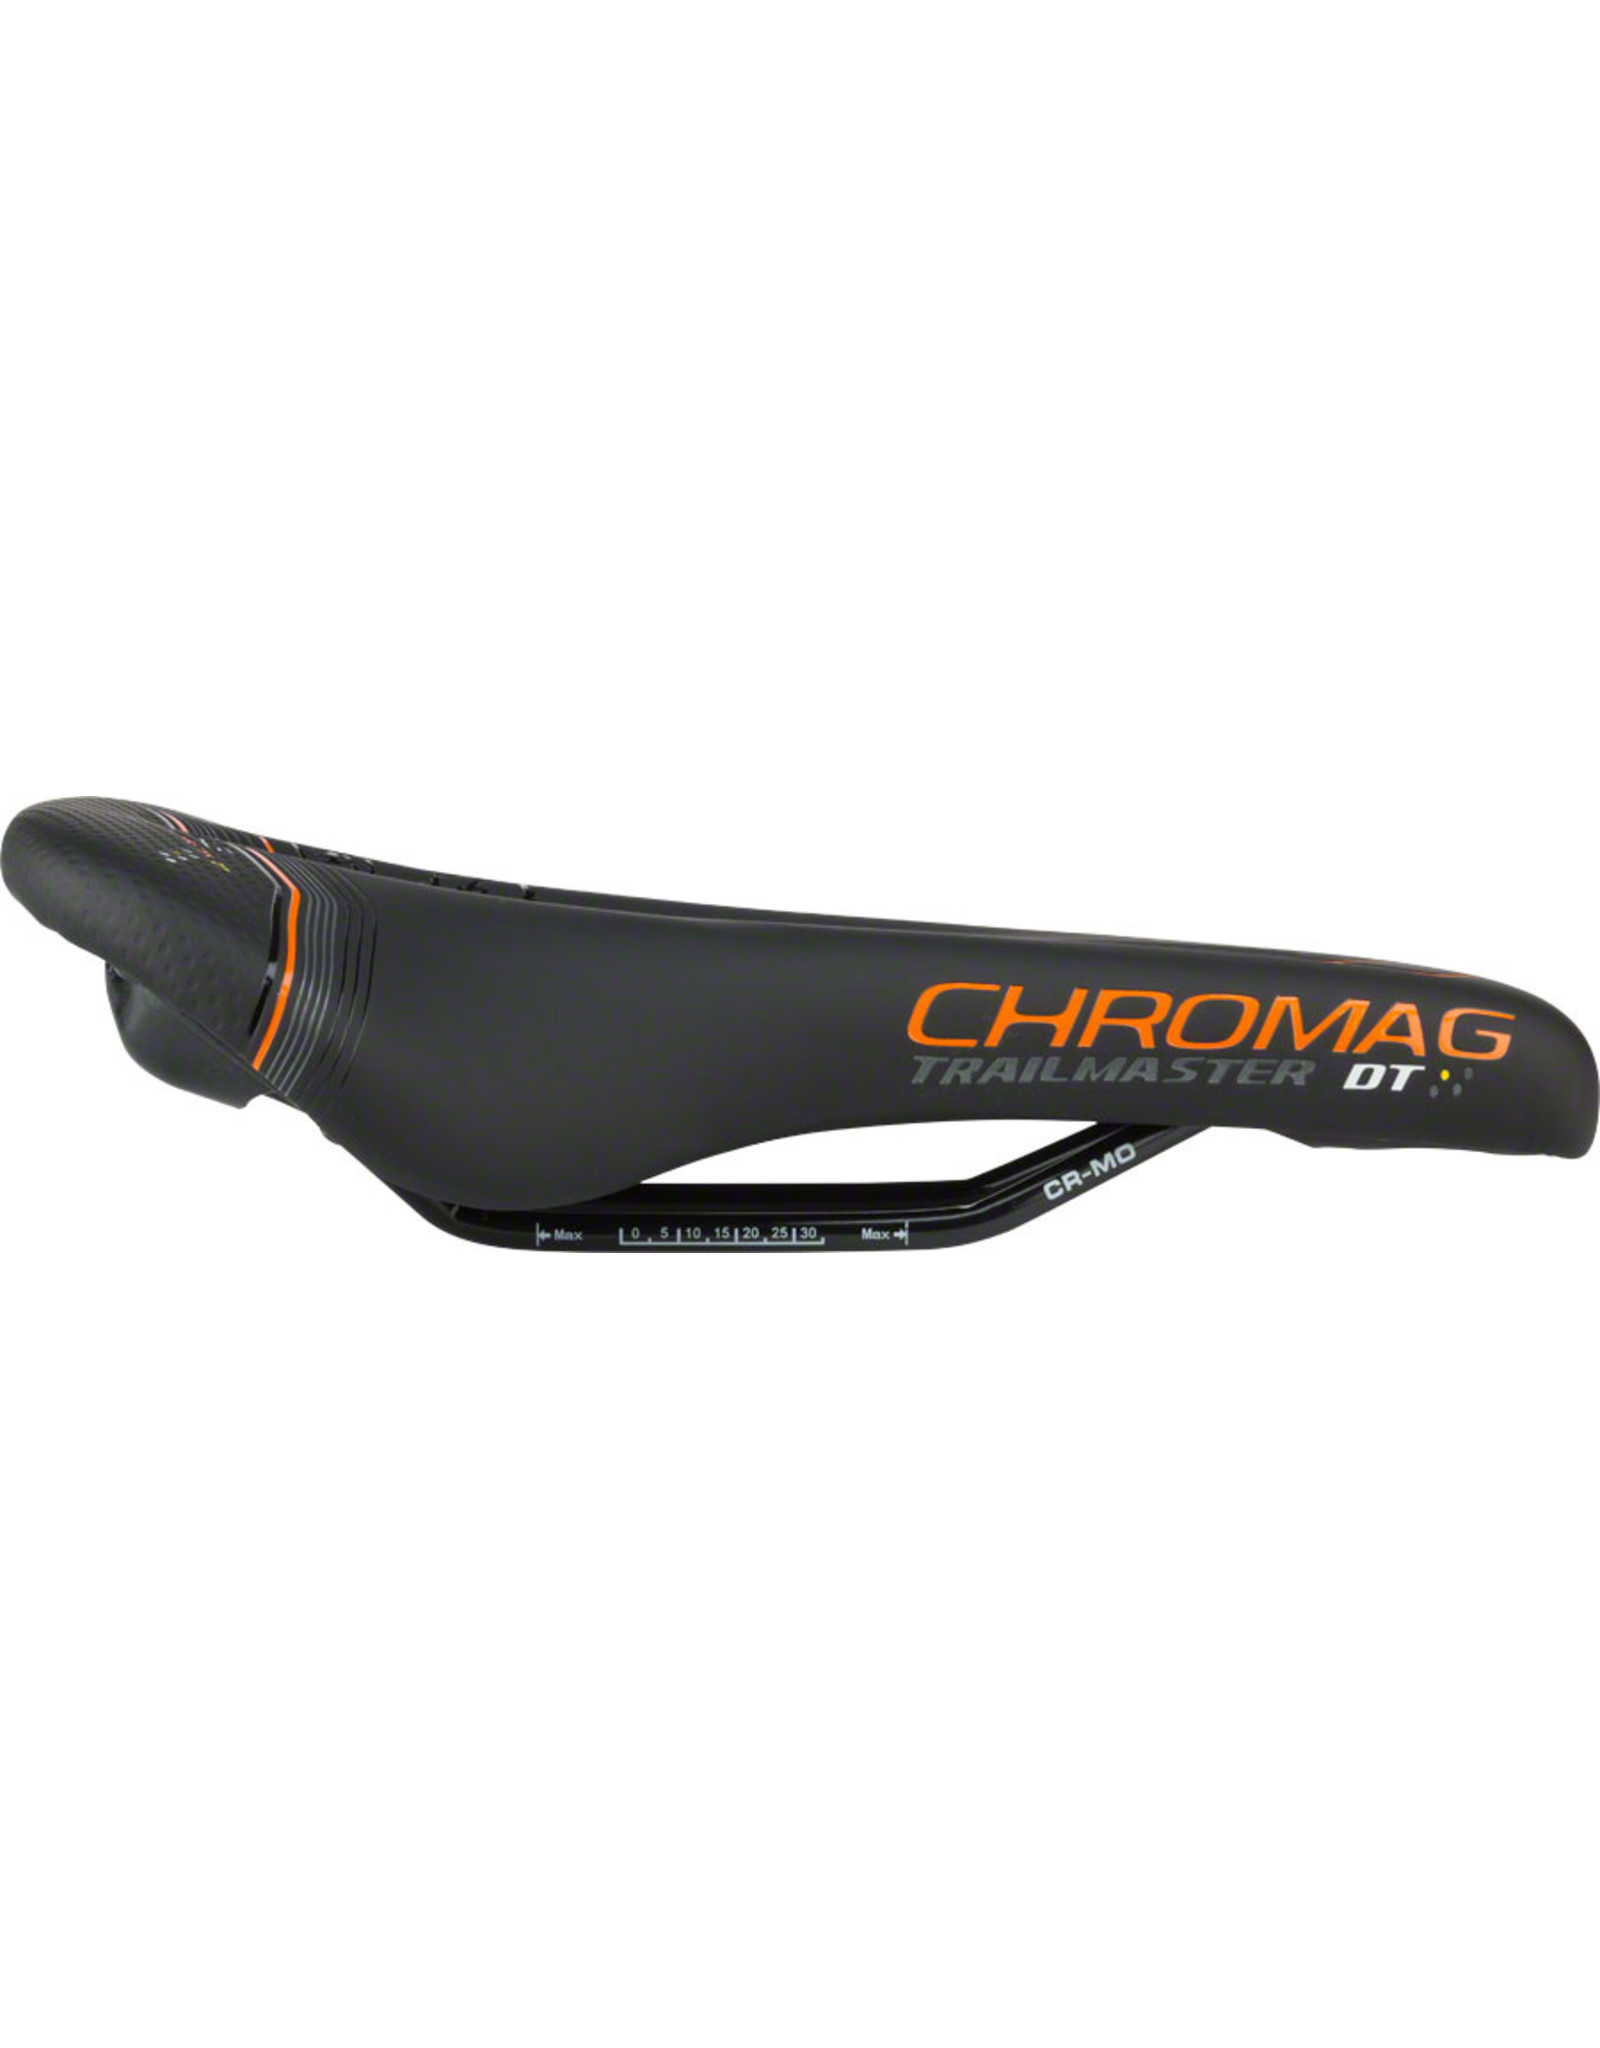 Chromag Trailmaster DT Saddle: Synthetic Cover, Black and Tight Orange